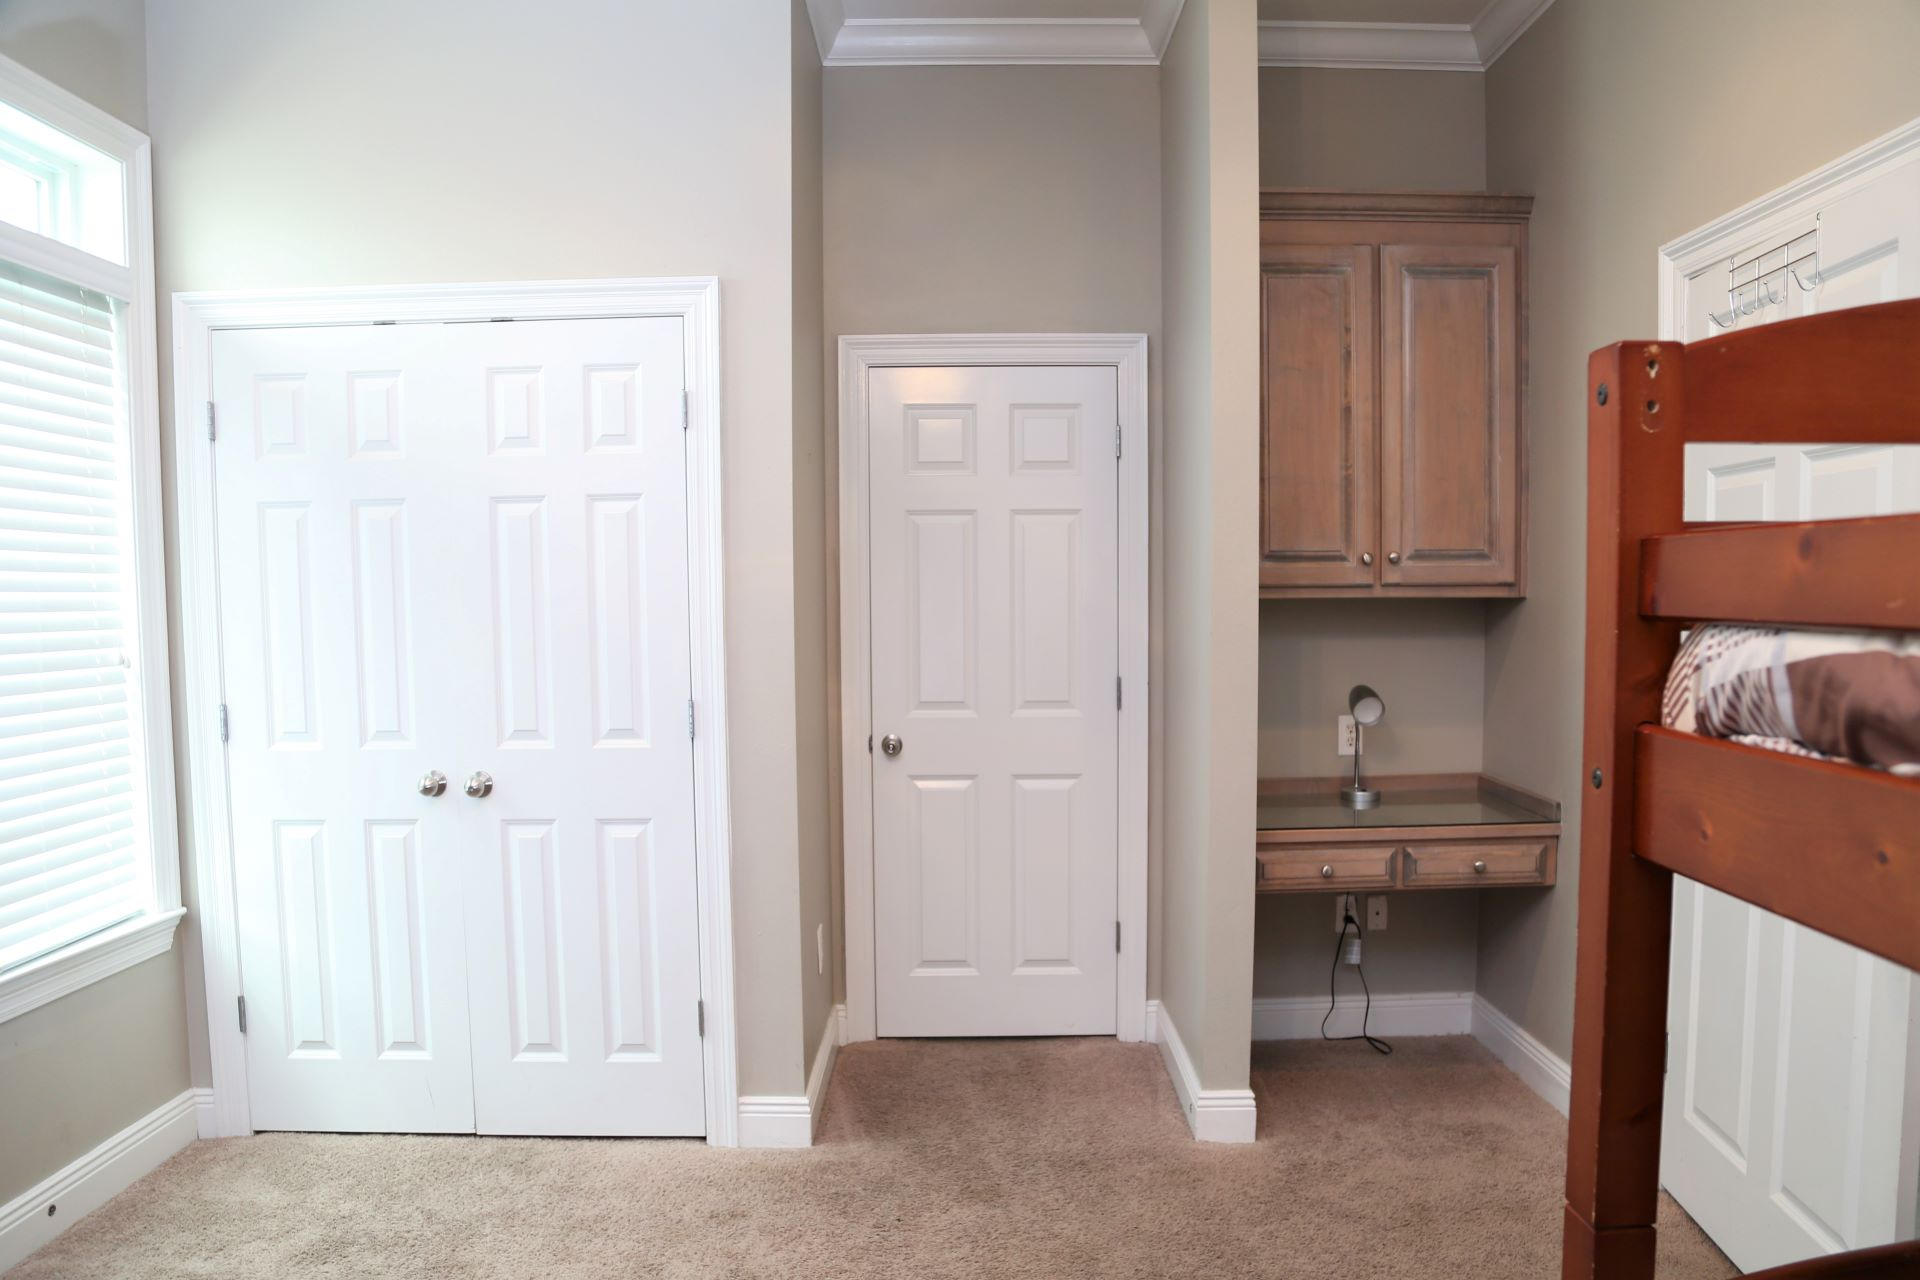 The second bedroom has access to the hall bathroom and inclu